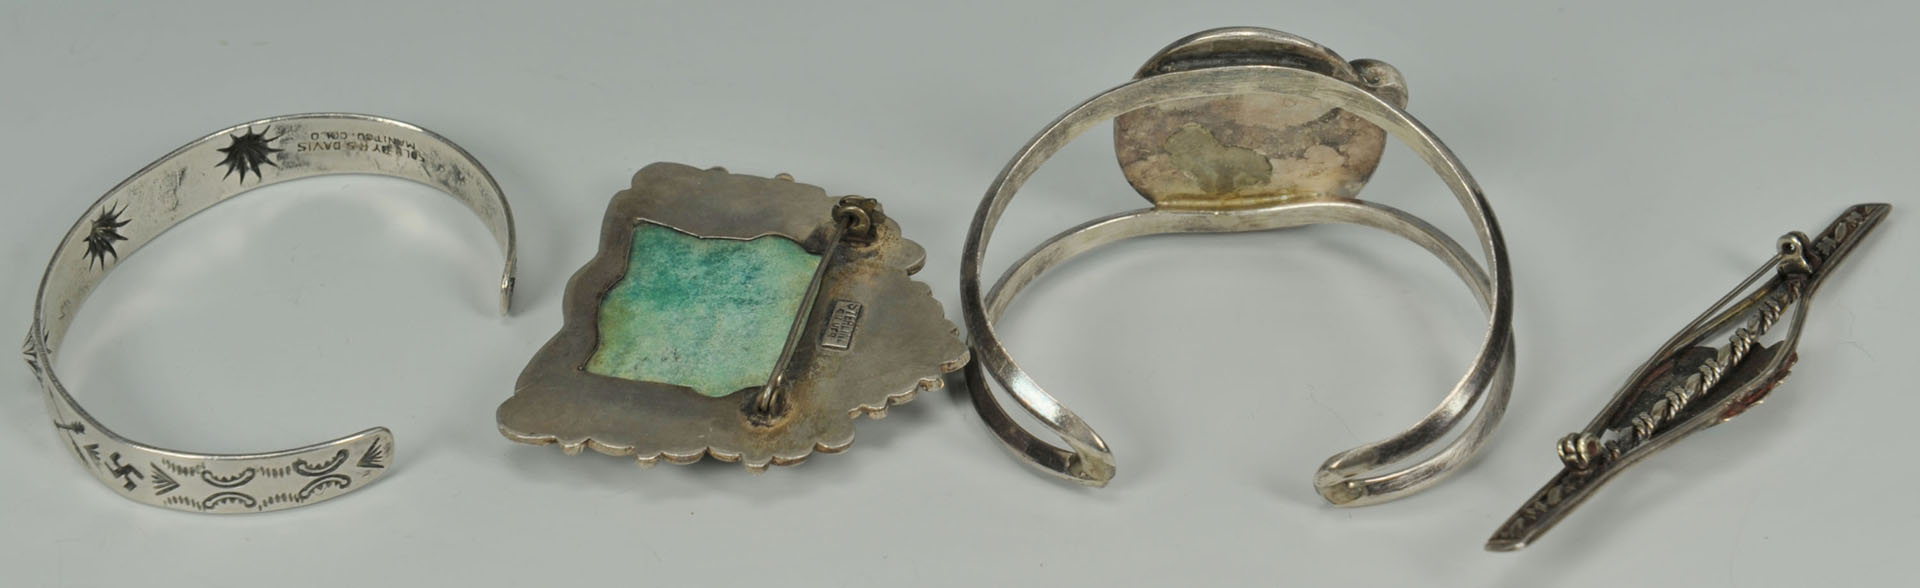 Group of Southwestern turquoise jewelry